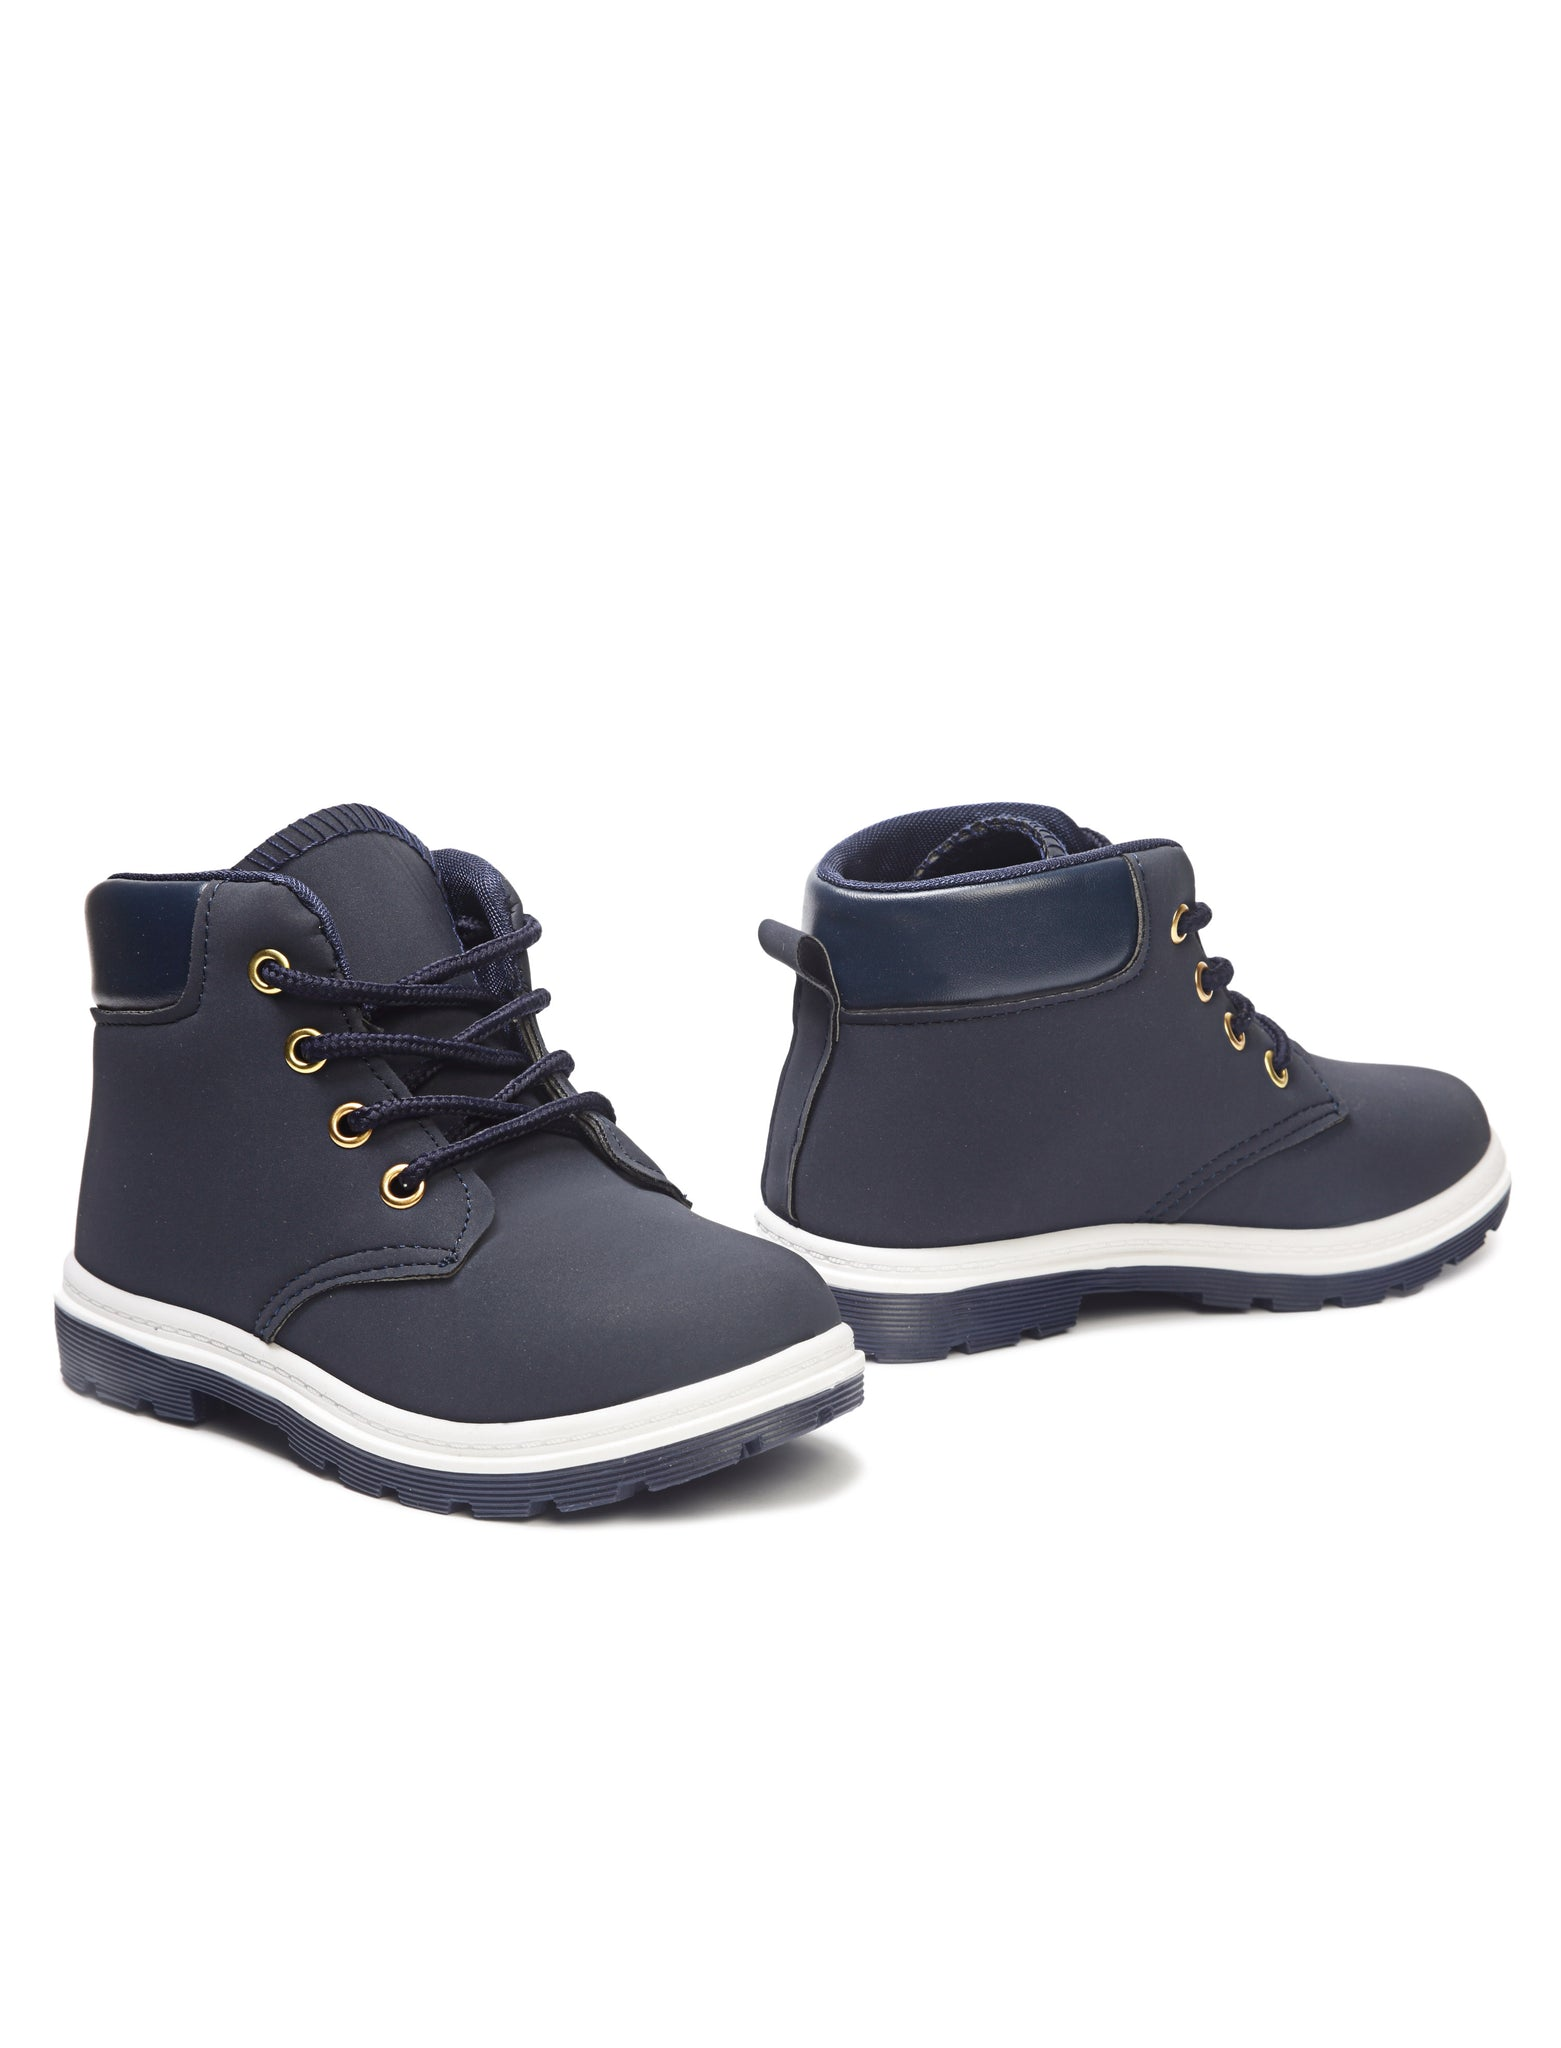 Boys Ankle Boots - Navy